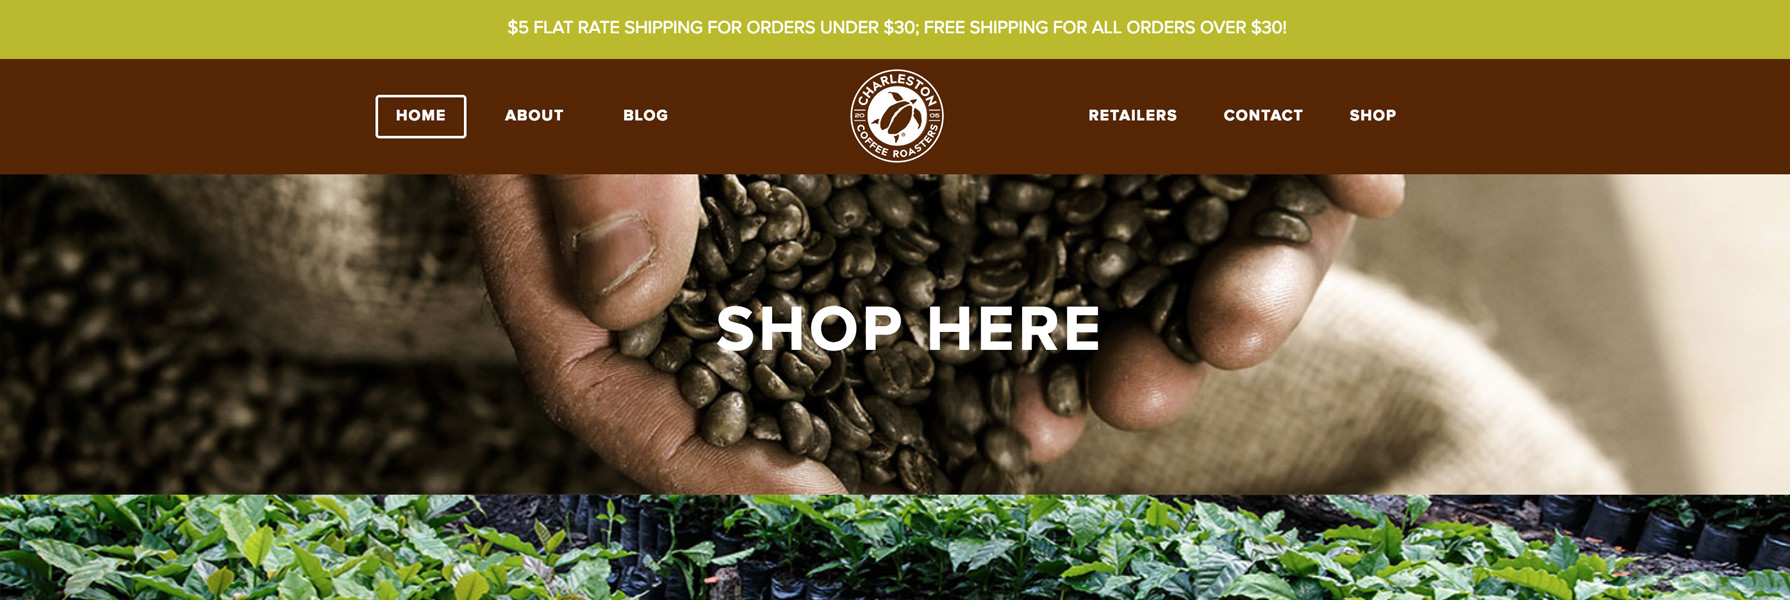 Charleston Coffee Roasters Online Store, Responsive Layout and Web Programming